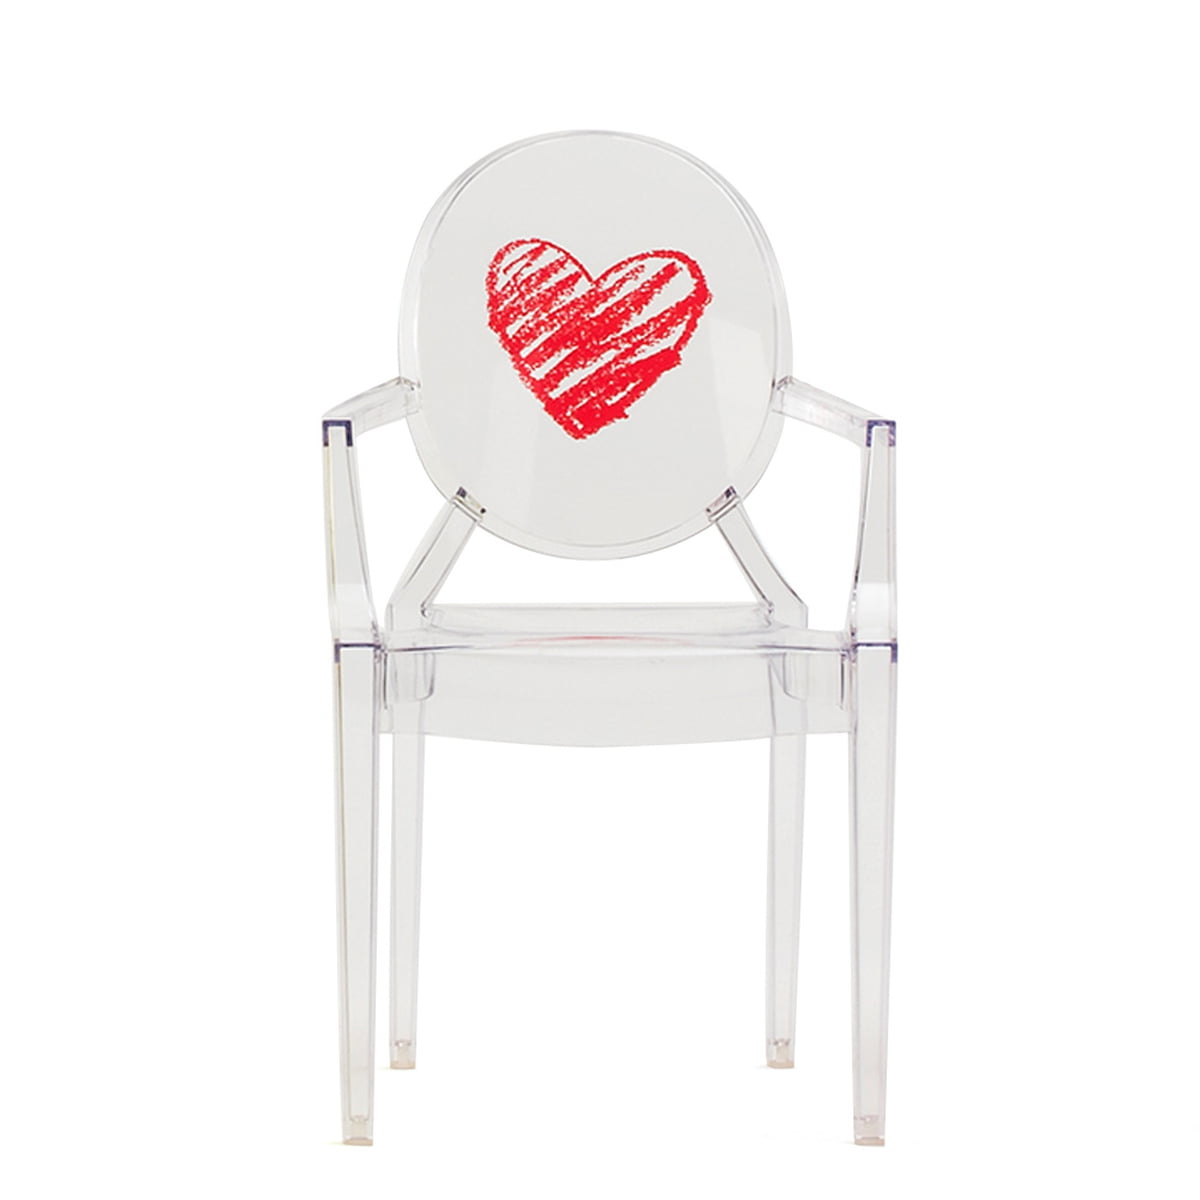 children's chair lou lou ghost by kartell in the shop - lou lou ghost children's chair by kartell in transparent  heart